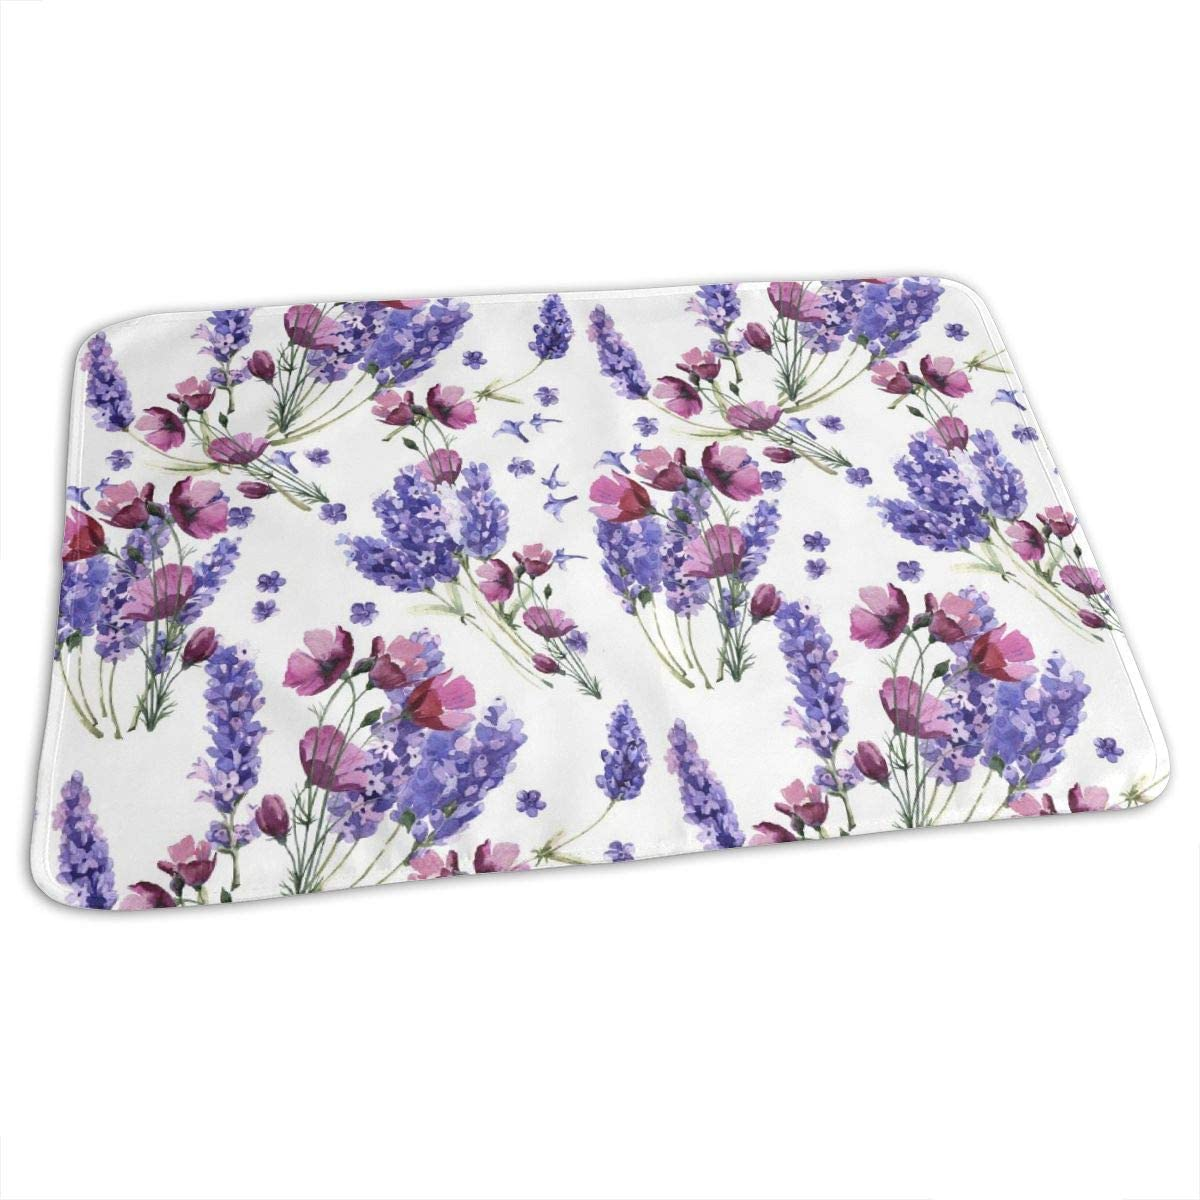 UAJAR Ranking TOP19 Wildflower Lavender Flower Special price for a limited time Baby Pad Cove Changing Reusable